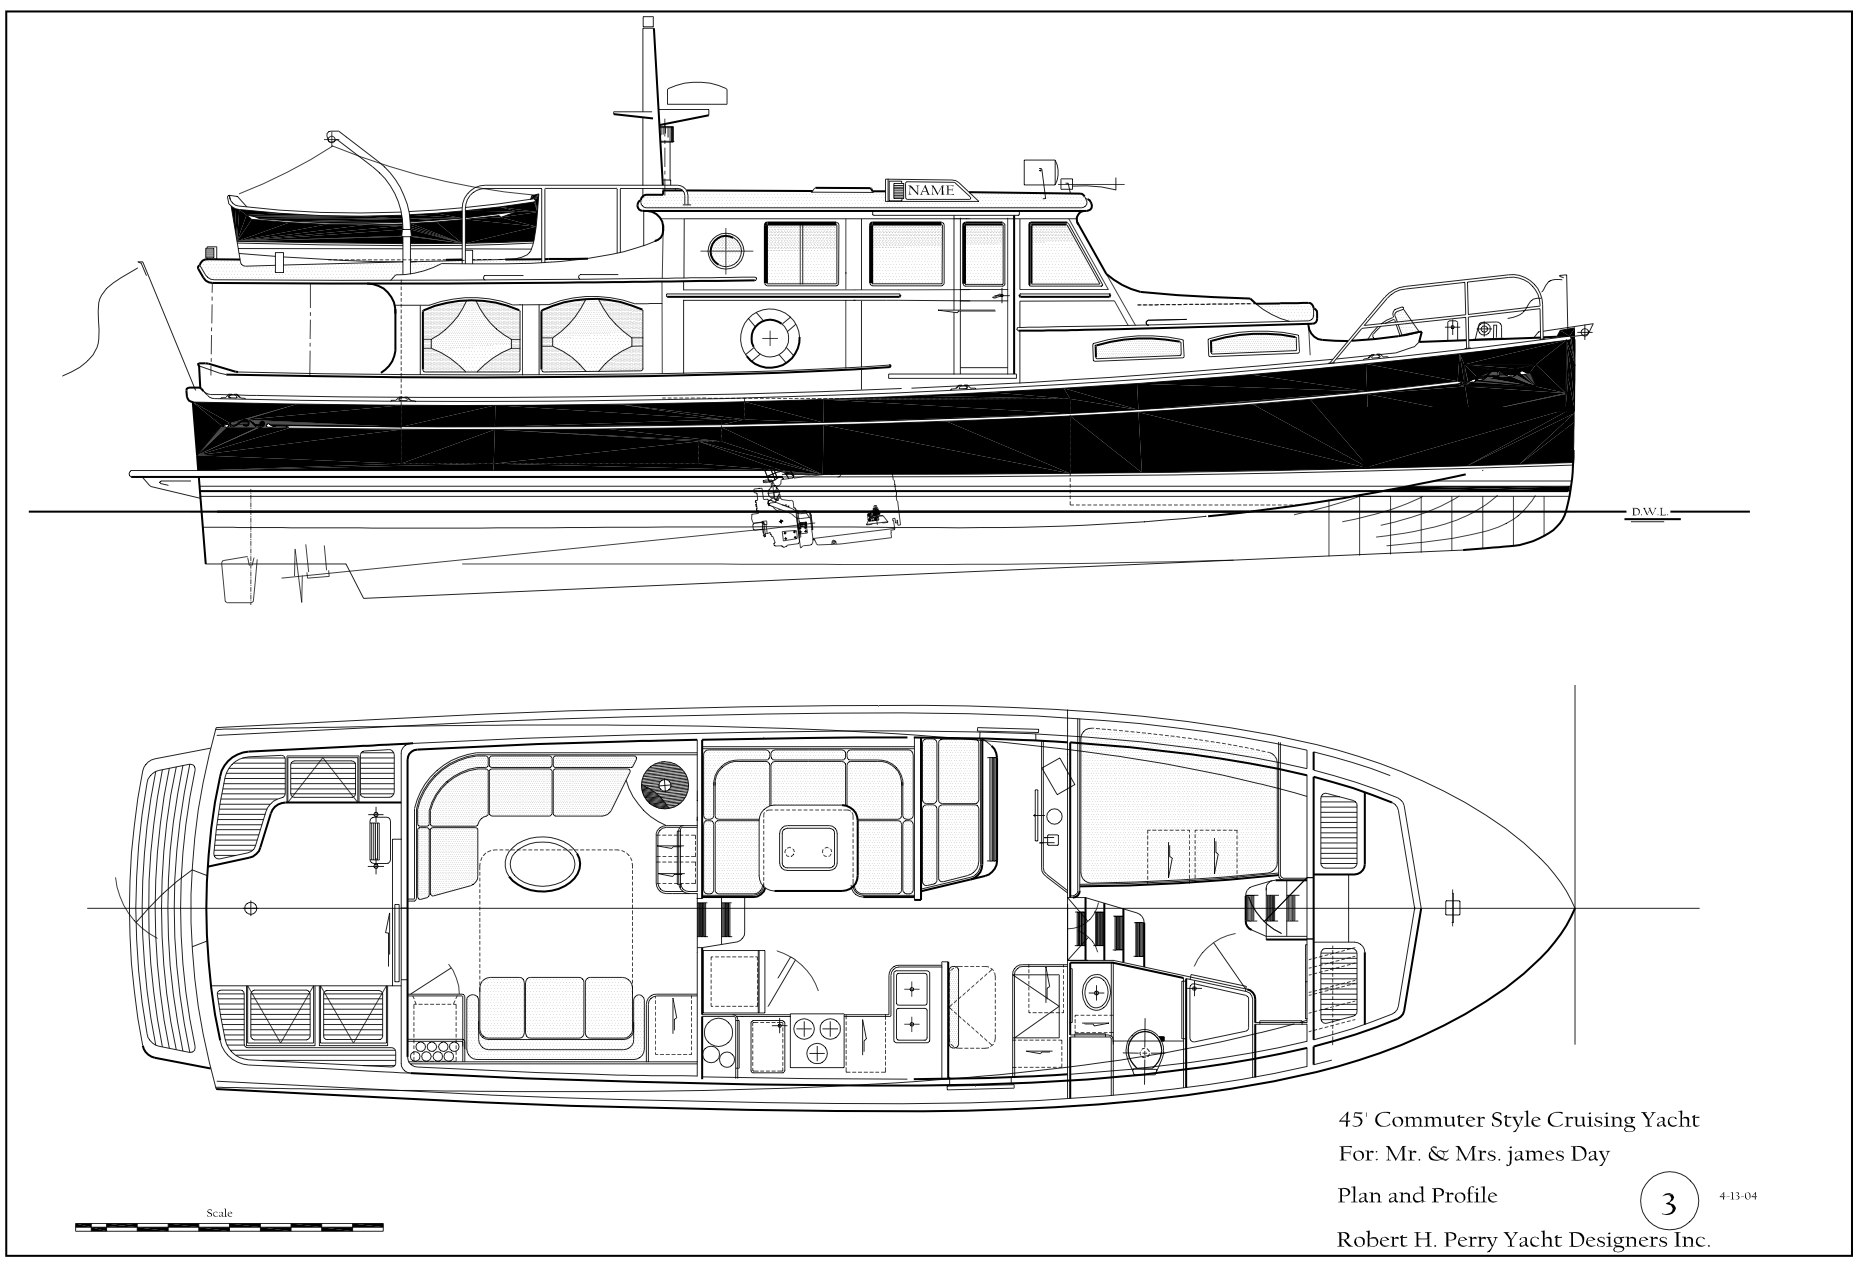 Robert h perry yacht designers inc drawings plans stacks image 1444 malvernweather Choice Image